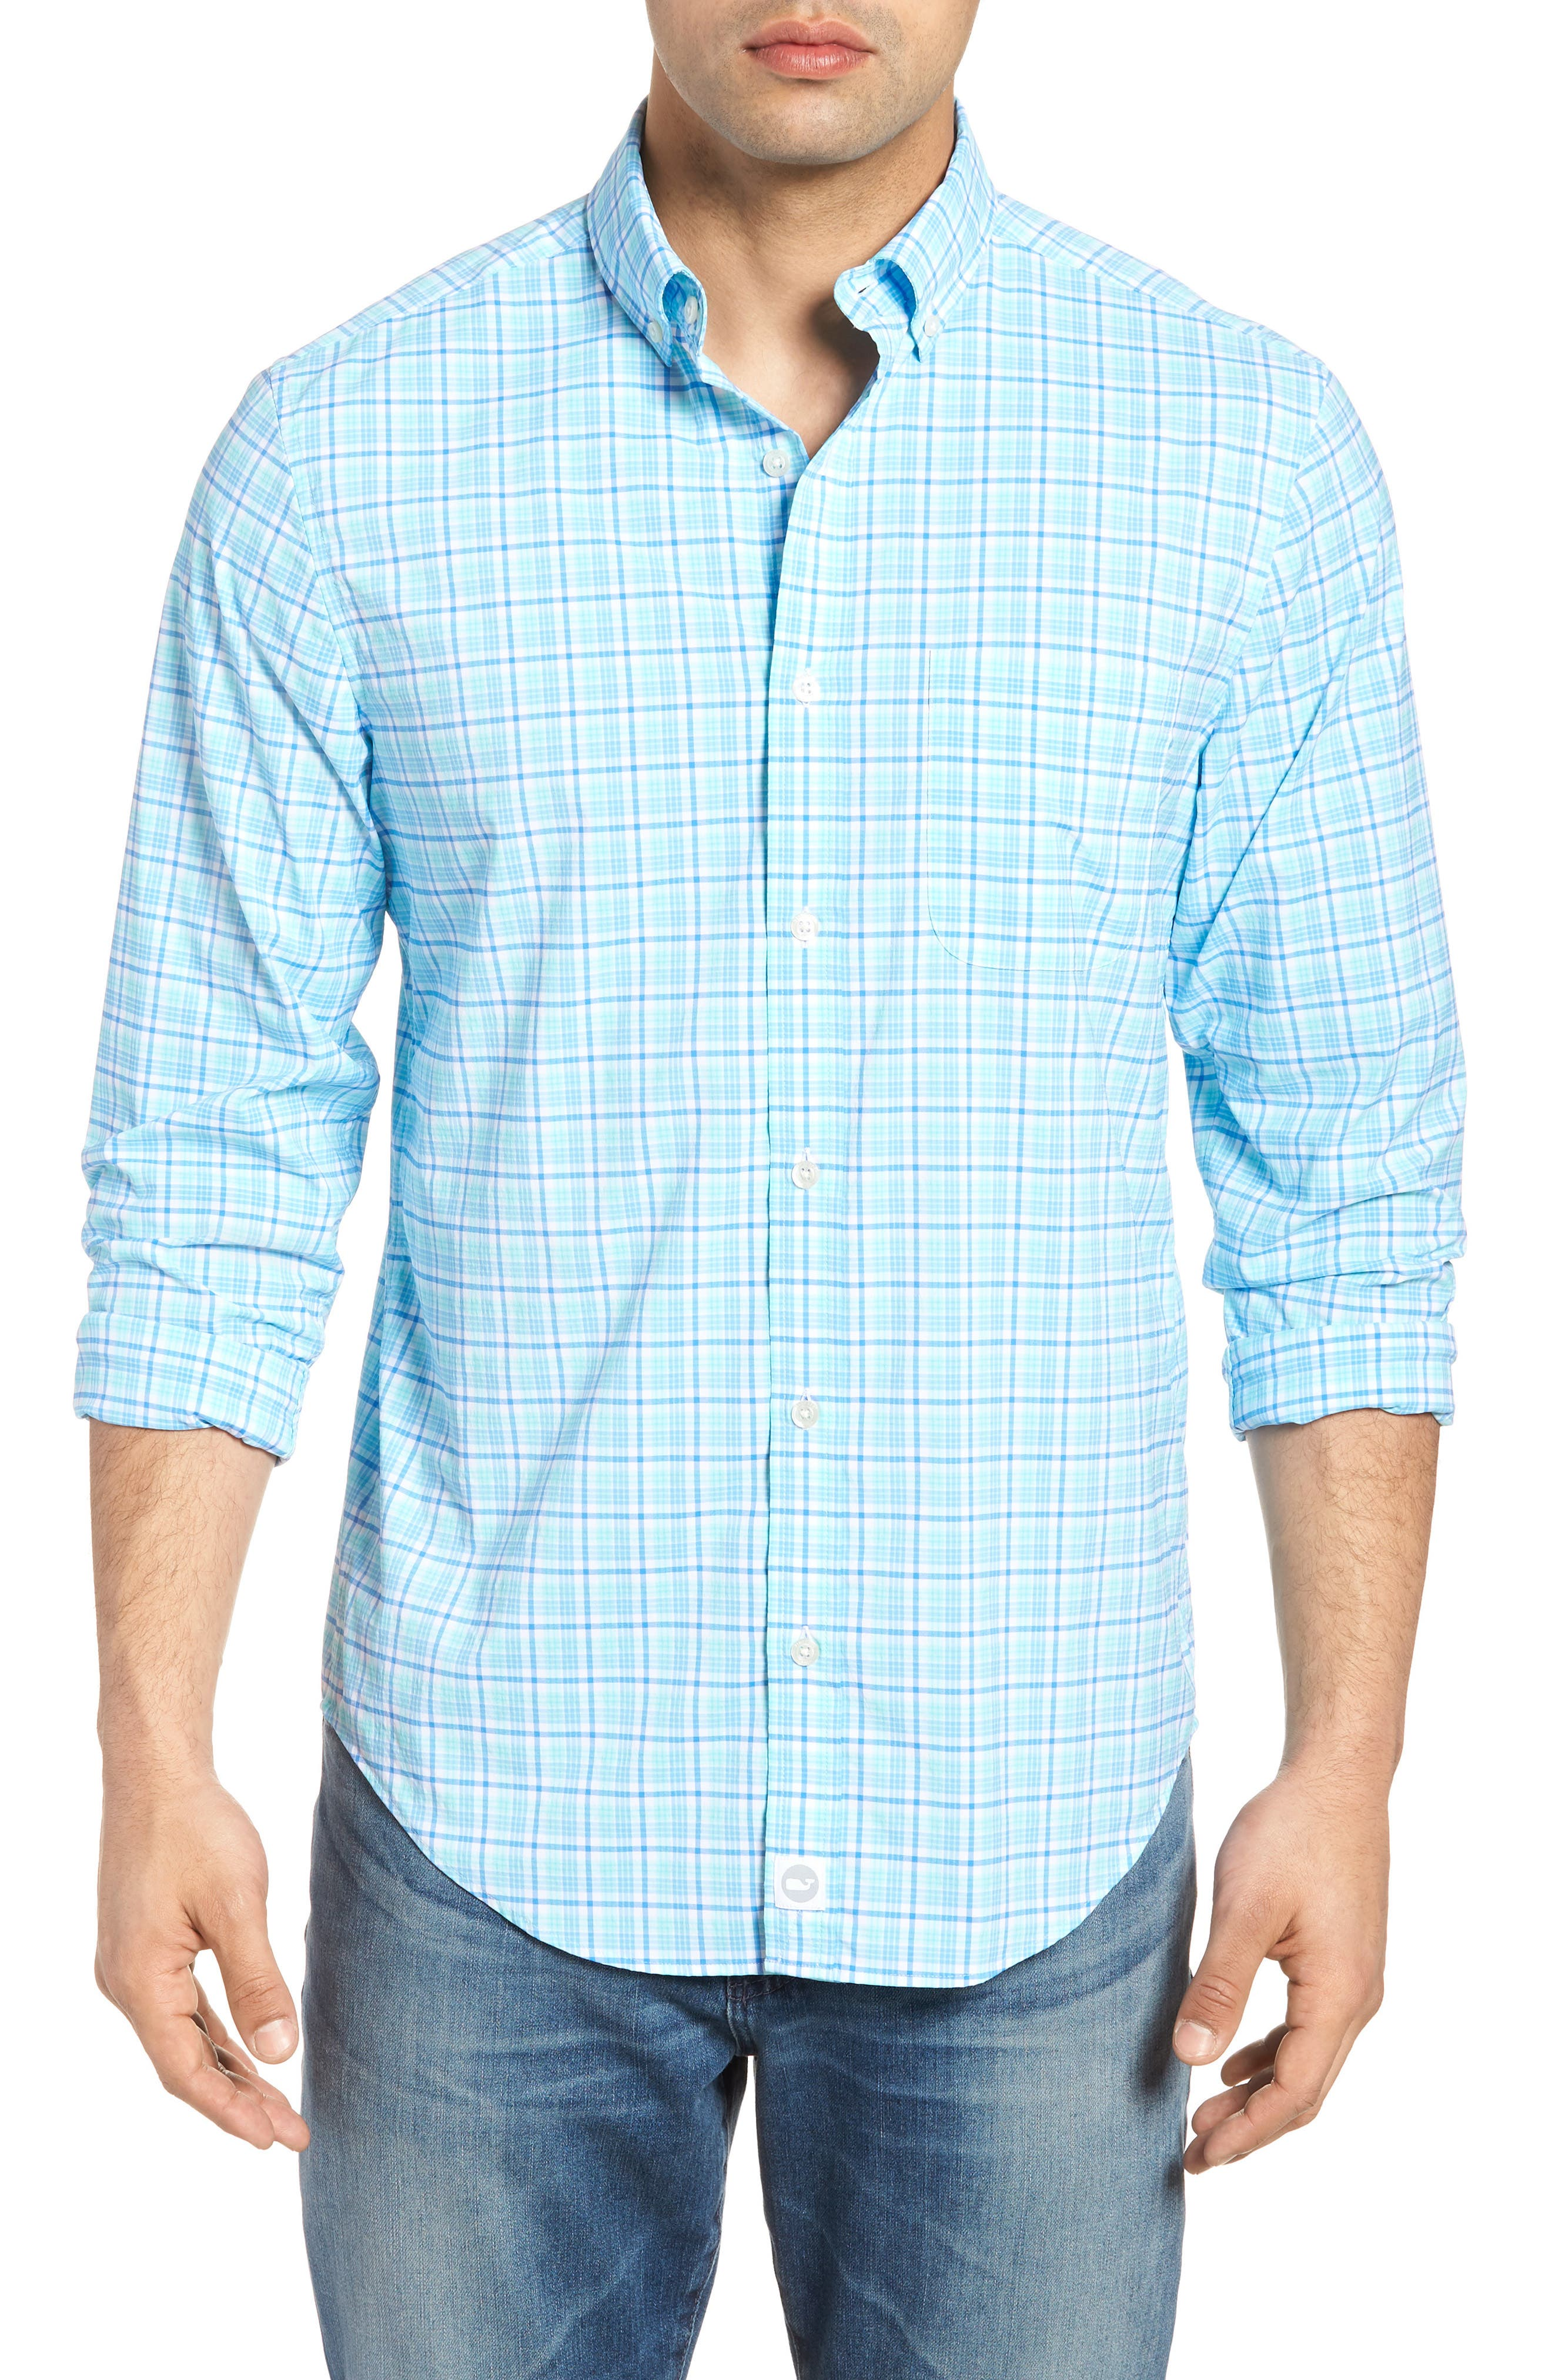 Tipsy Bar Classic Fit Stretch Plaid Sport Shirt,                             Main thumbnail 1, color,